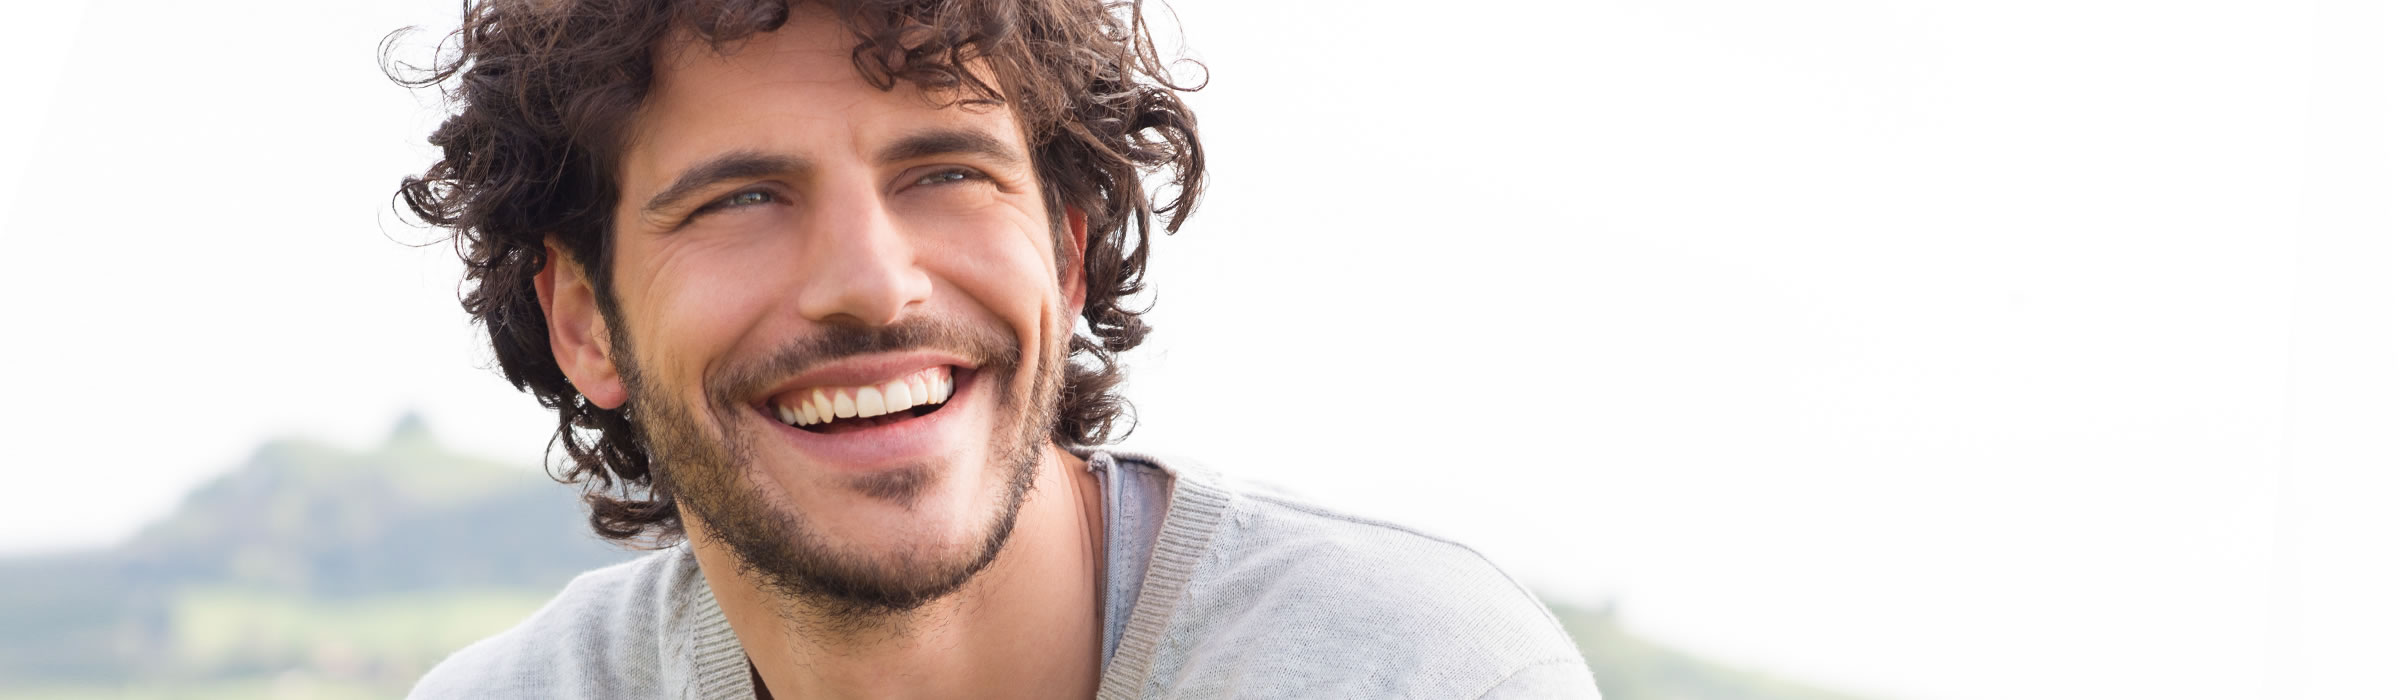 Man laughing. Cosmetic dentist Watford offering inlays and onlays. Senova Dental Studios in Watford, Hertfordshire